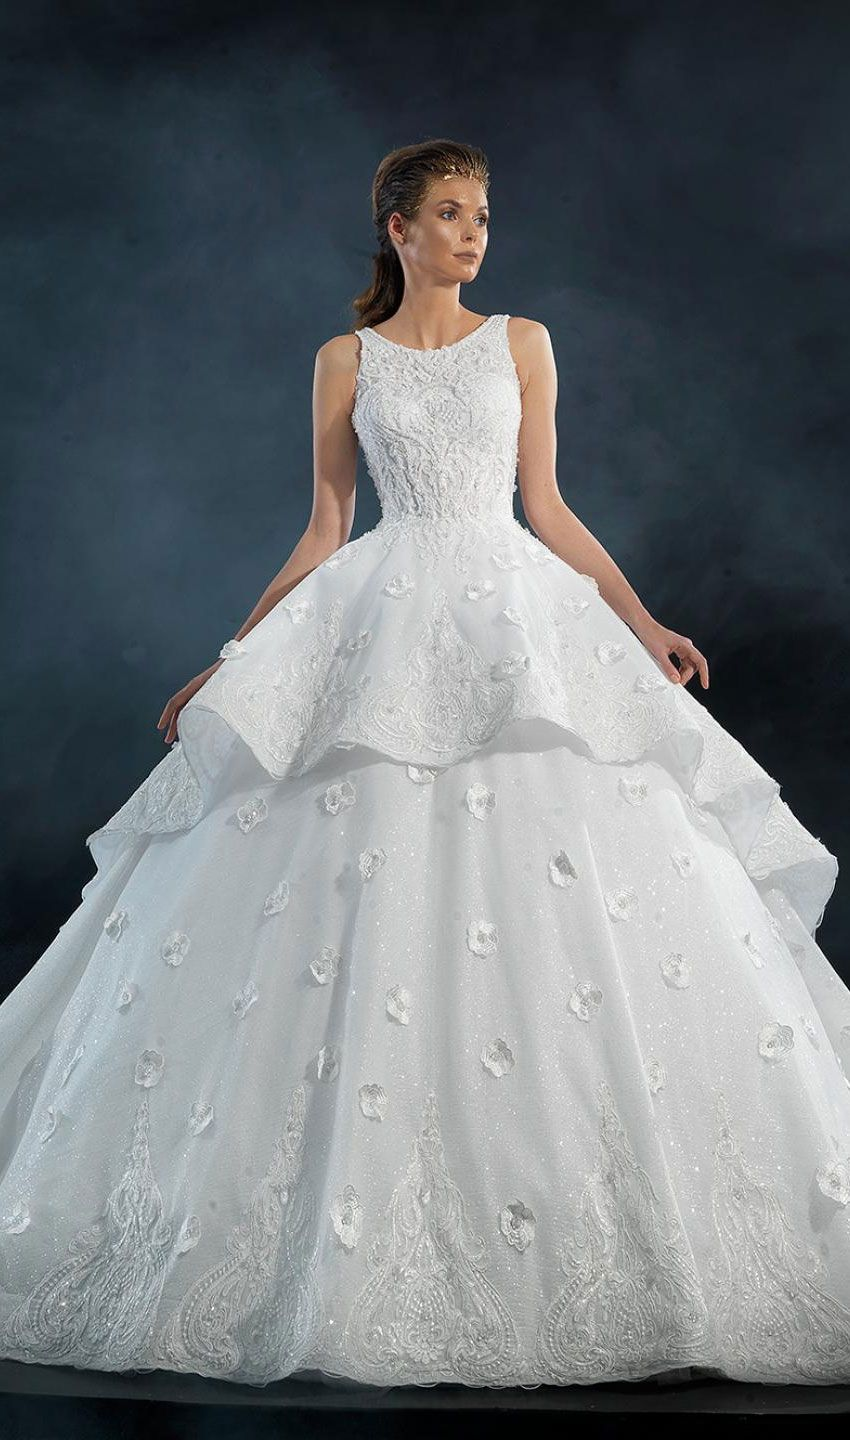 Naja Saade Couture 2019 Wedding Dresses - Starlight 2019 Bridal Collection - wedding dress with loyal train #wedding #weddingdress #weddinggown